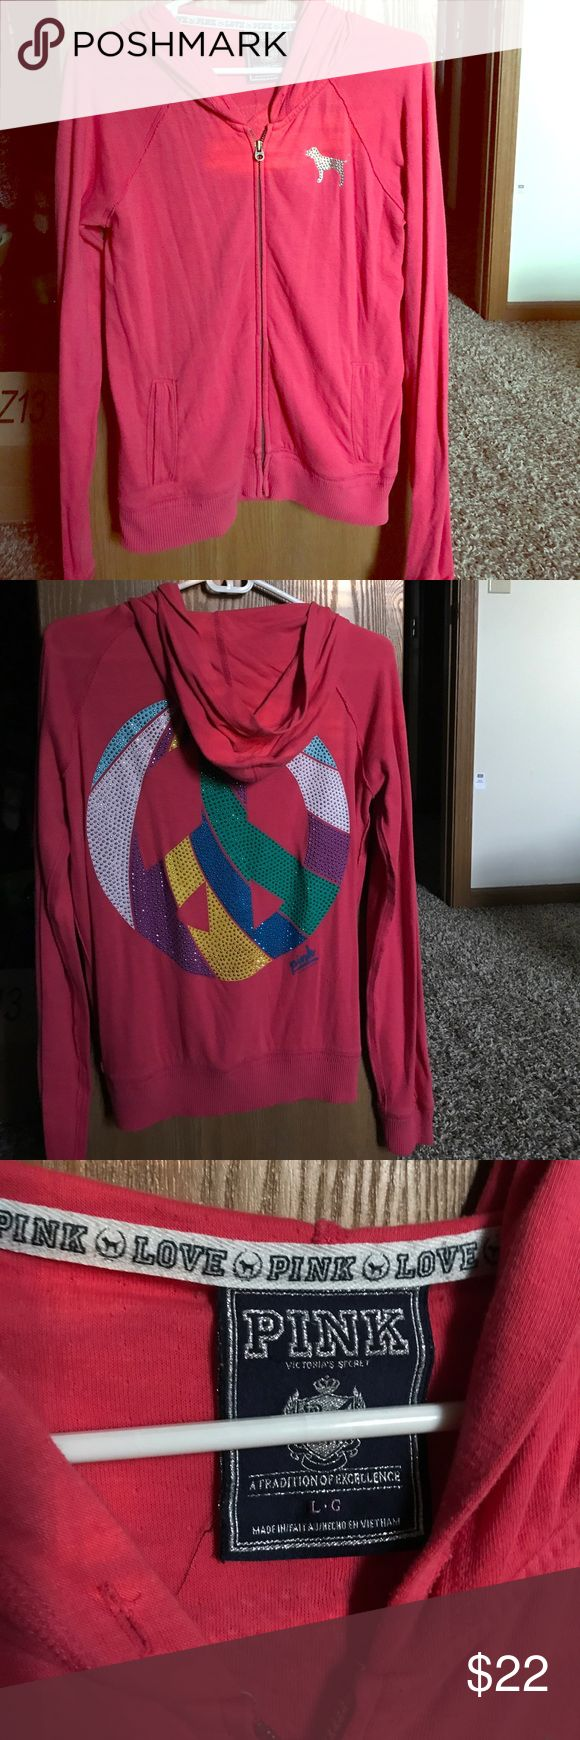 PINK Victoria's secret hooded zip up jacket Hot pink VS zip up jacket, multicolor rhinestone peace sign on back, pockets in front, women's size large, fits true to size, only worn a few times, still in great condition, super light weight and comfy! PINK Victoria's Secret Tops Sweatshirts & Hoodies